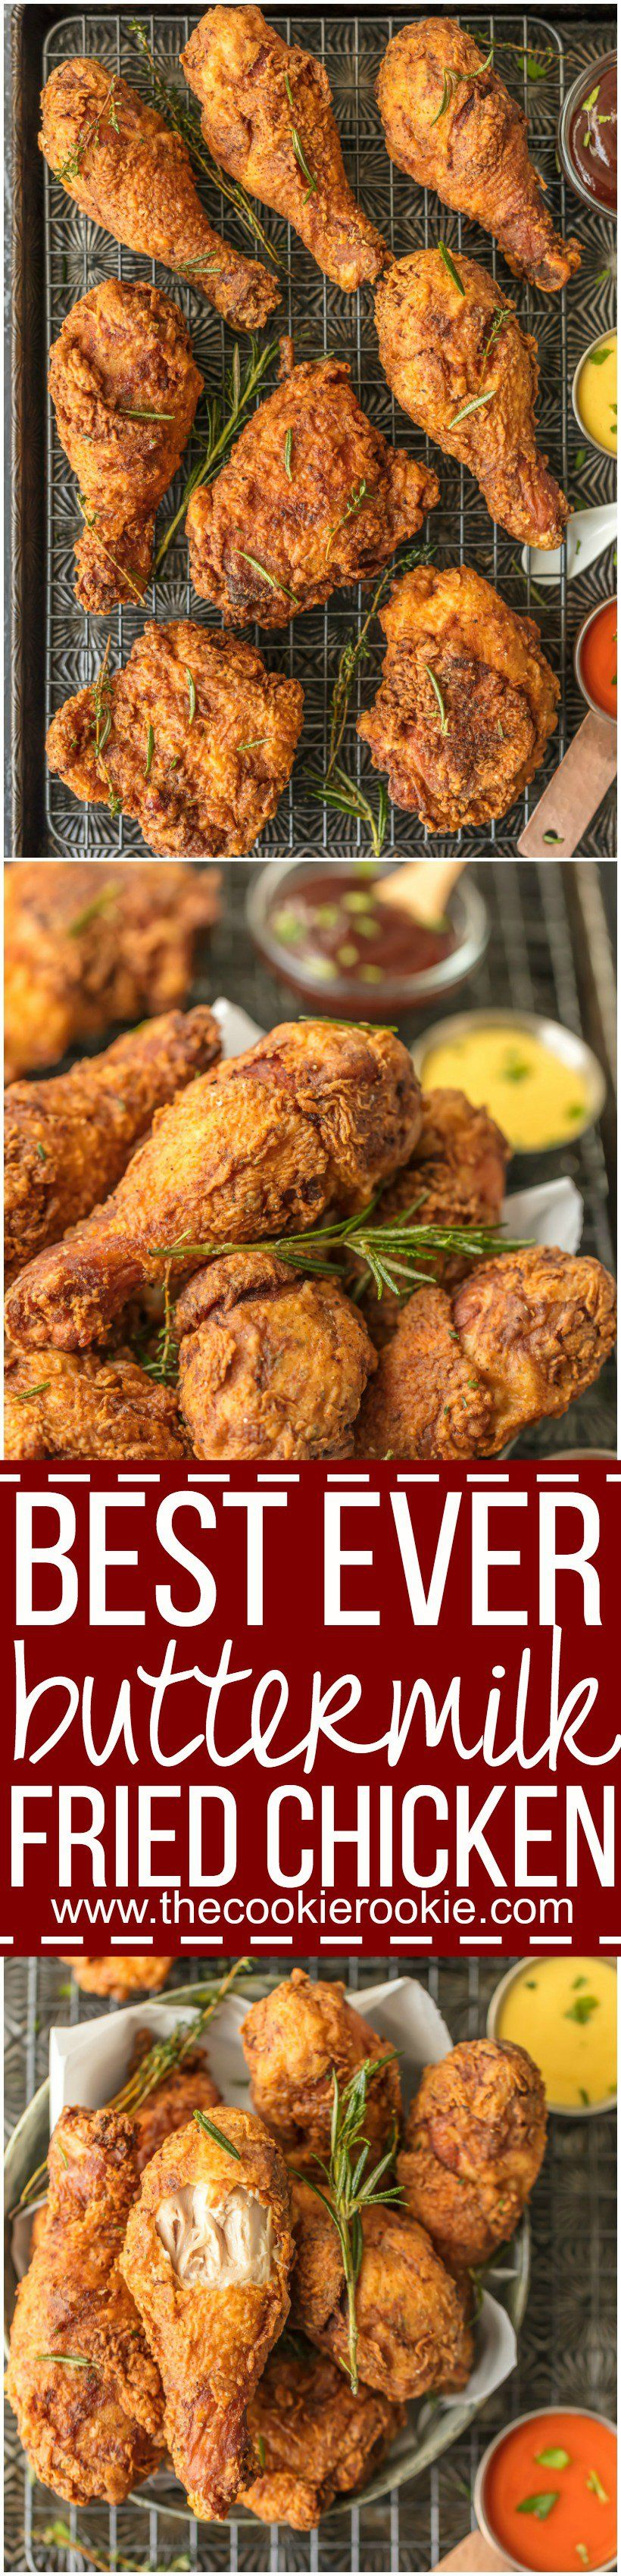 Best Ever Buttermilk Fried Chicken The Cookie Rookie Bloglovin Chicken Recipes Fried Chicken Recipes Poultry Recipes